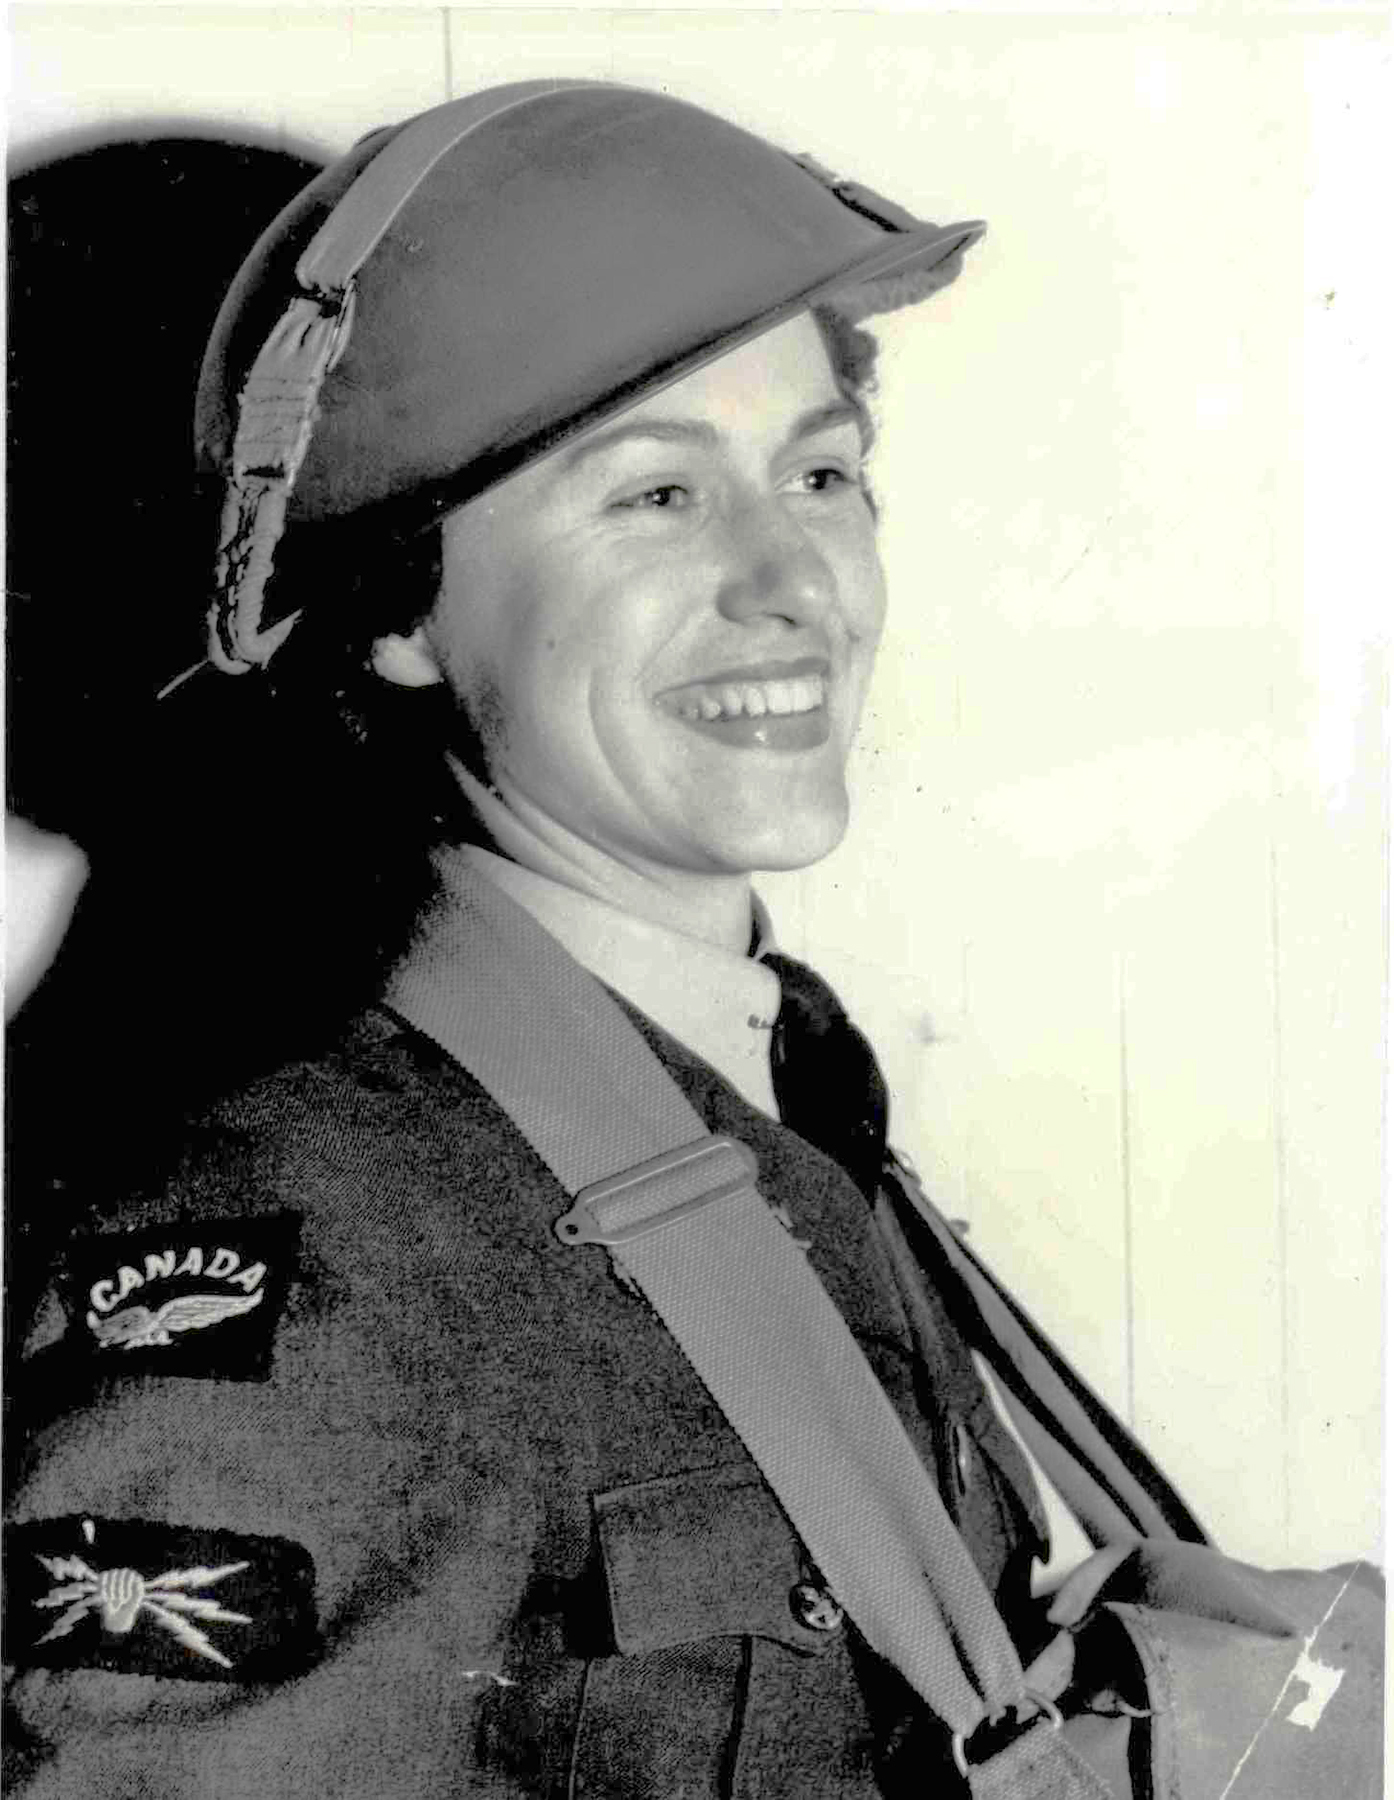 A black and white photo of a smiling young woman, in ¾ profile, wearing a helmet and a uniform with badges.